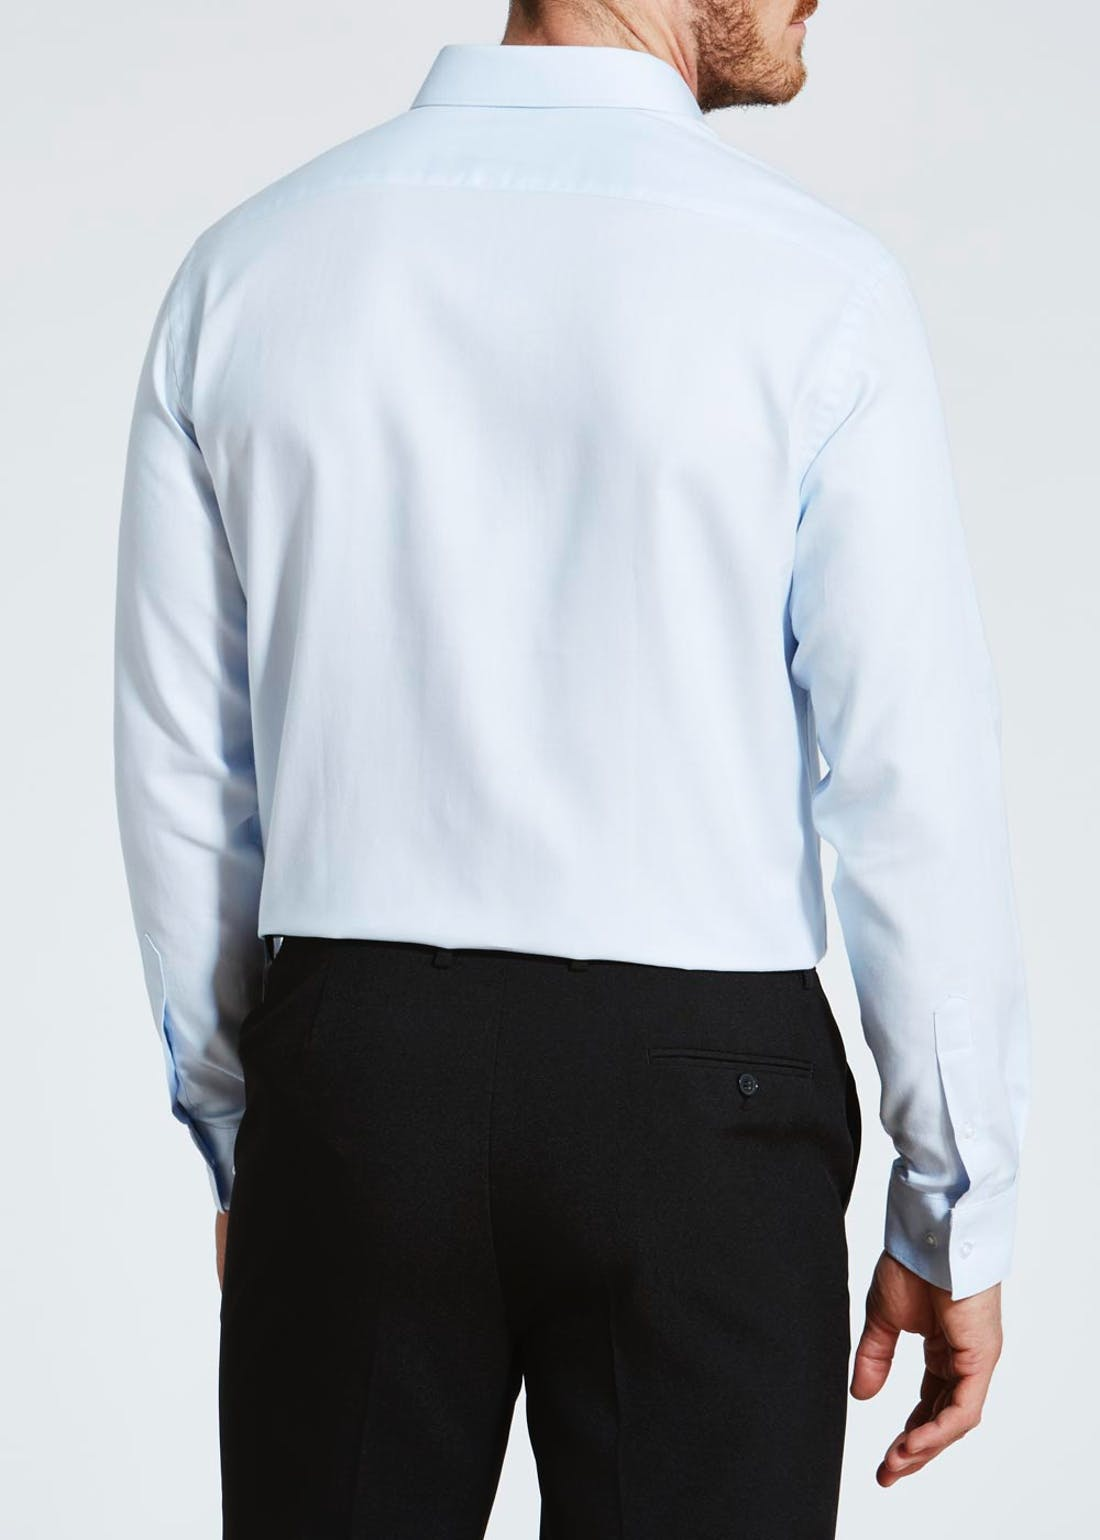 Taylor & Wright Regular Fit Long Sleeve Oxford Shirt